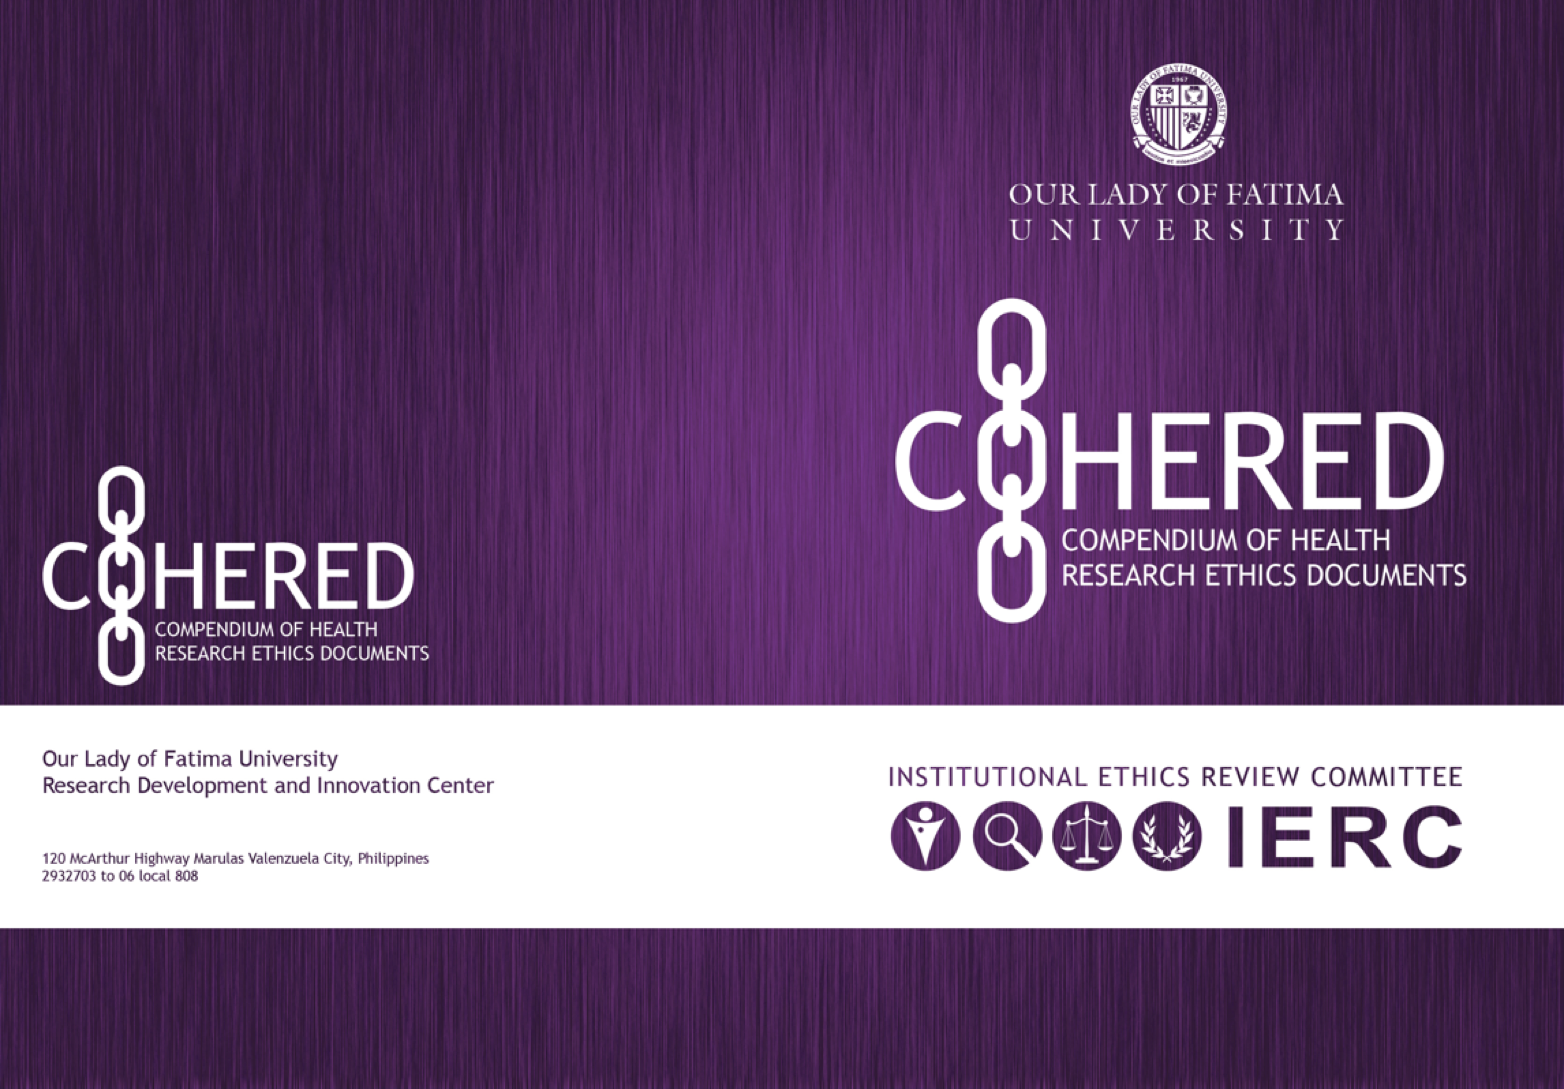 COMPENDIUM OF HEALTH RESEARCH ETHICS DOCUMENTS (COHERED)